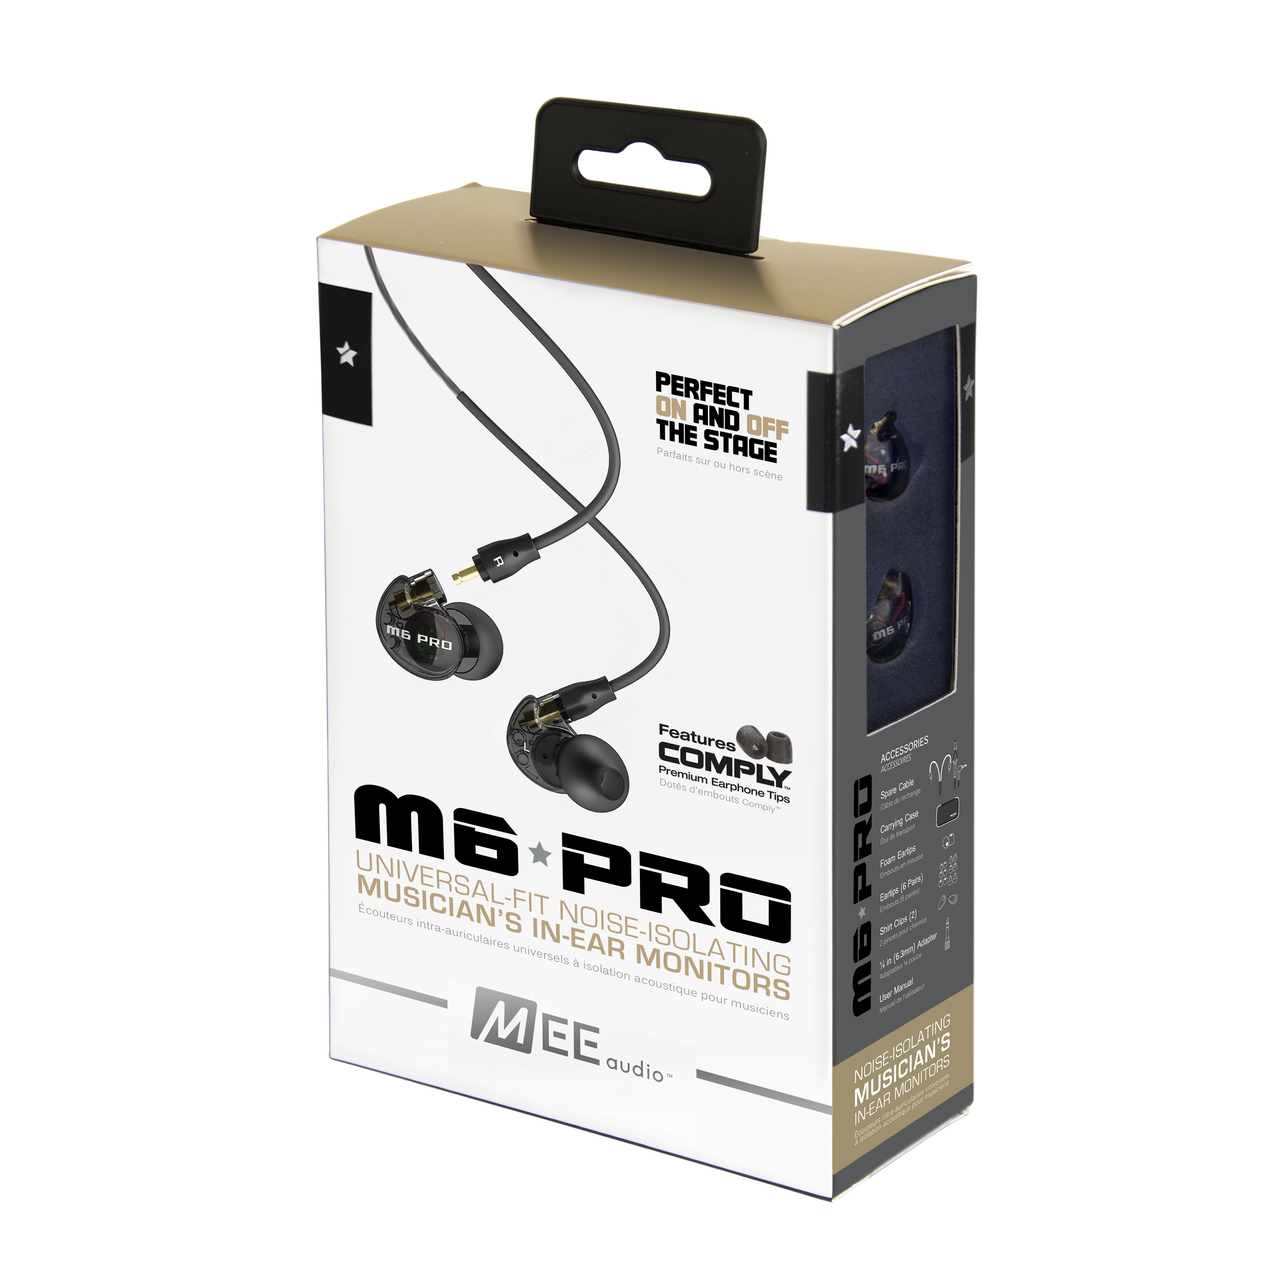 MEEAUDIO M6 PRO UNIVERSAL-FIT NOISE-ISOLATING MUSICIAN'S IN-EAR MONITORS WITH DETACHABLE CABLES - SMOKE - EP-M6PRO-BK-MEE